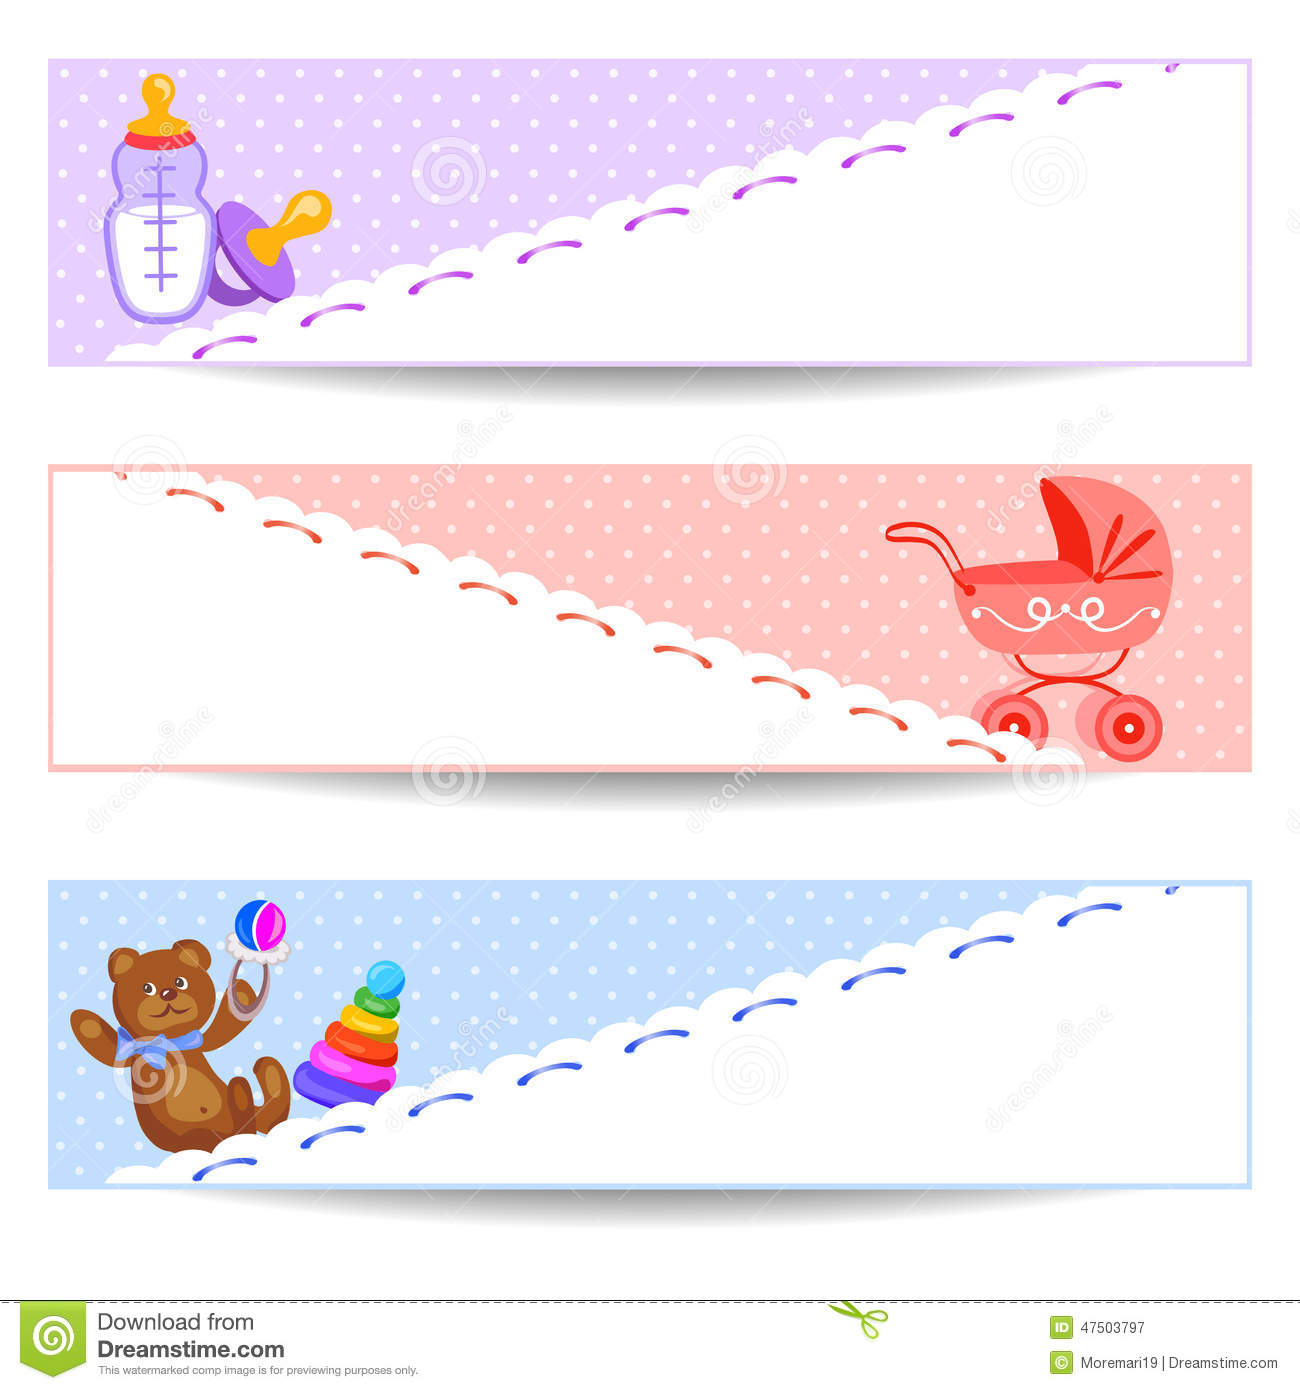 Banners With Baby Items Stock Vector - Image: 47503797